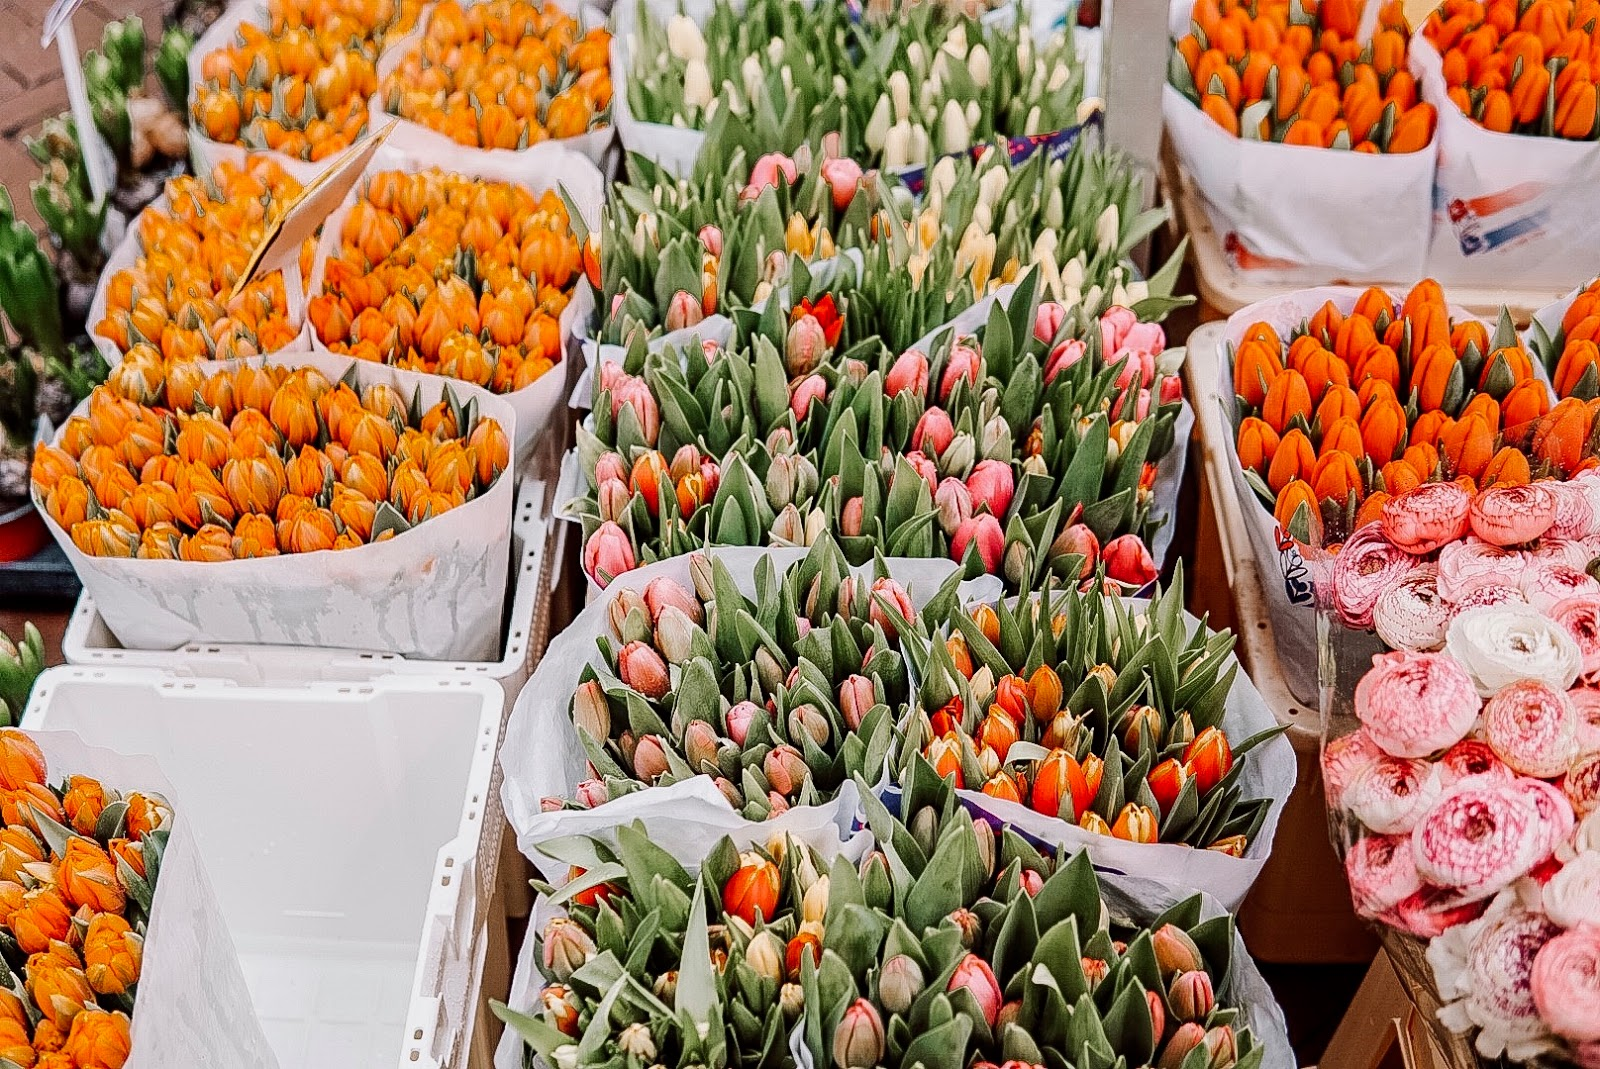 colorful tulips at the market in amsterdam.